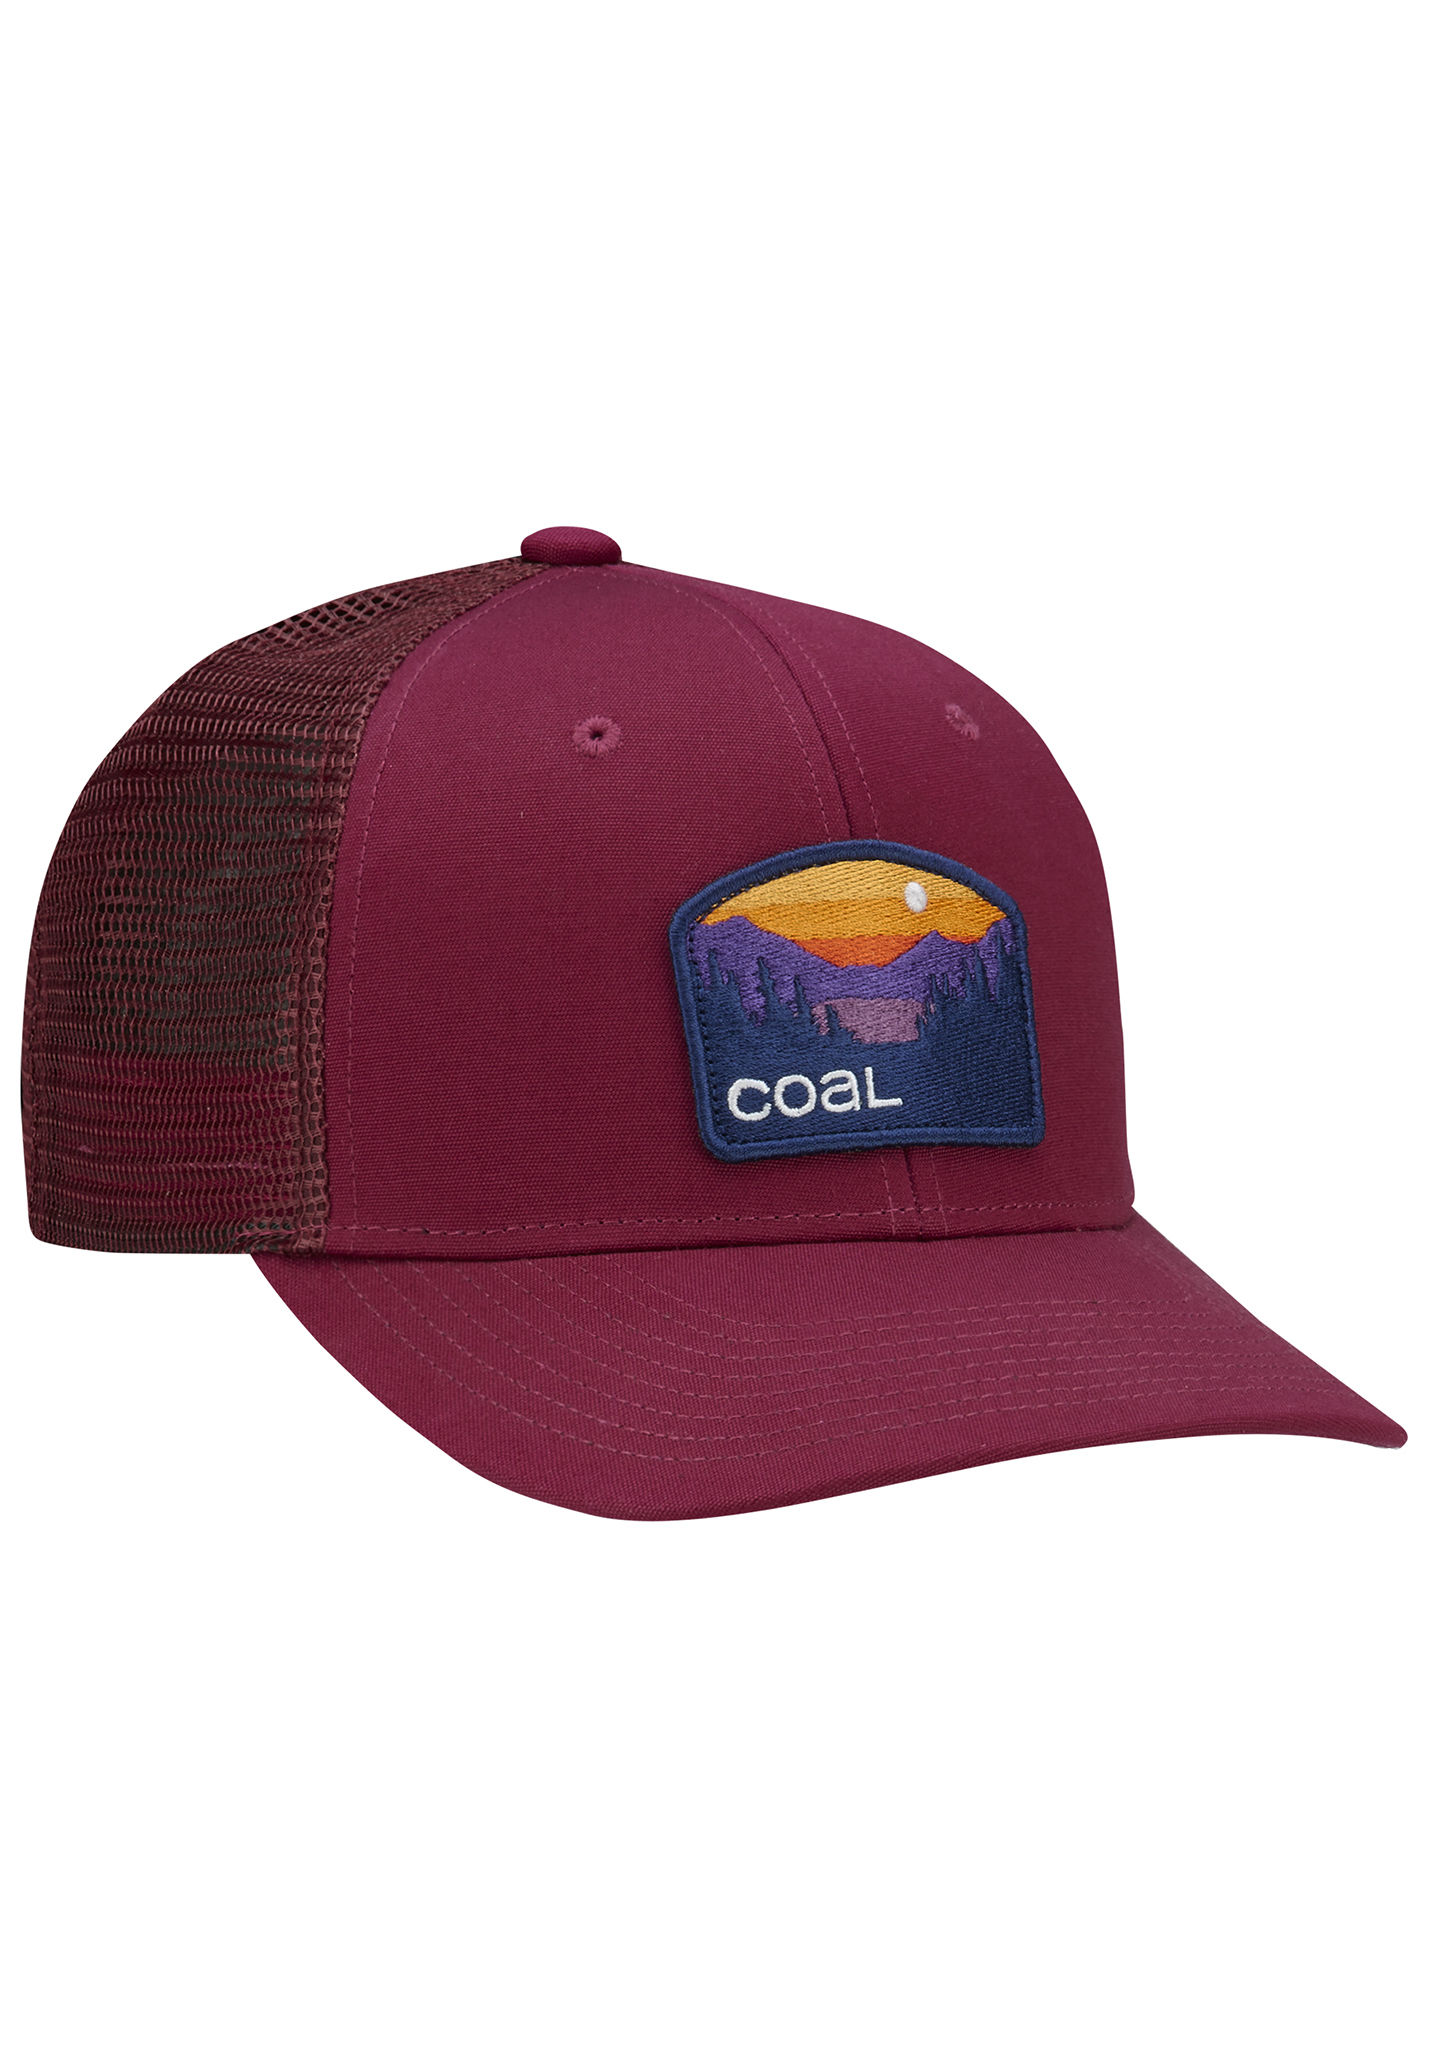 4d92b26e12960 Coal The Hauler Low - Trucker Cap - Red - Planet Sports